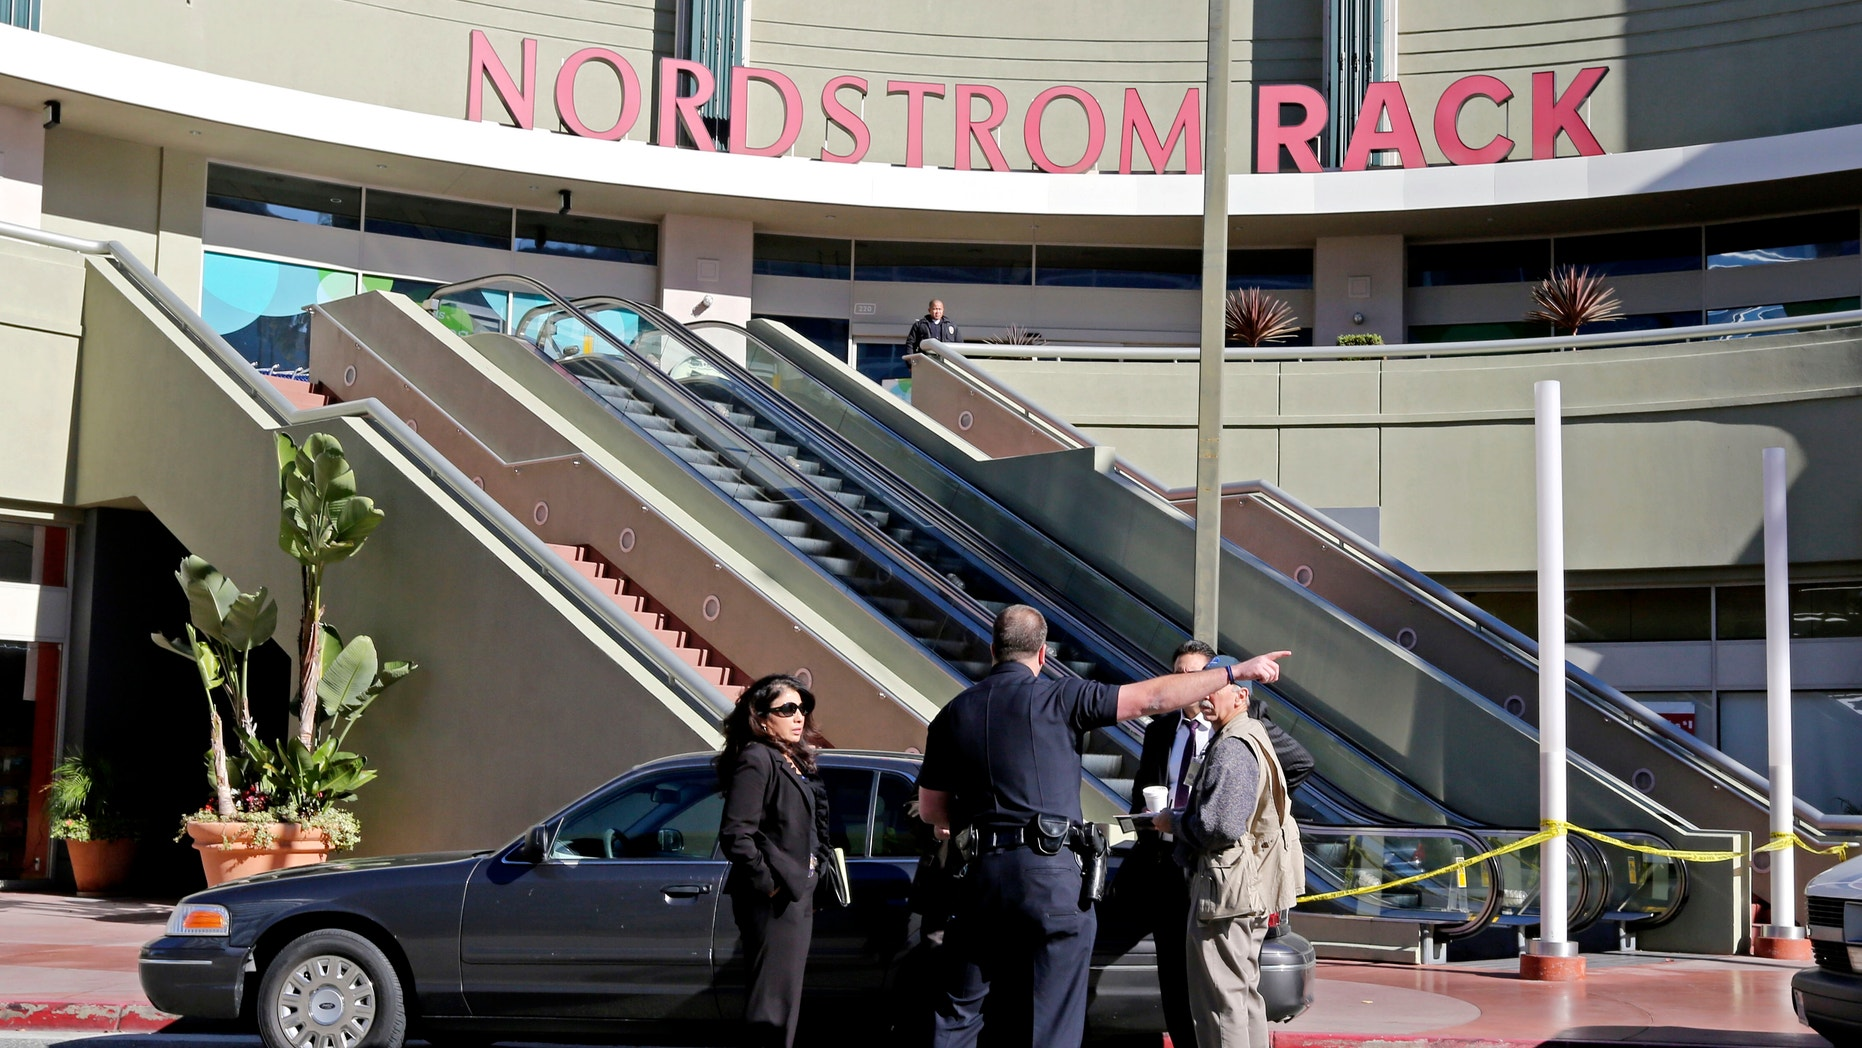 Jan. 11, 2013: Los Angeles police investigators stand outside a Nordstrom Rack store at Howard Hughes Center near Los Angeles International Airport.